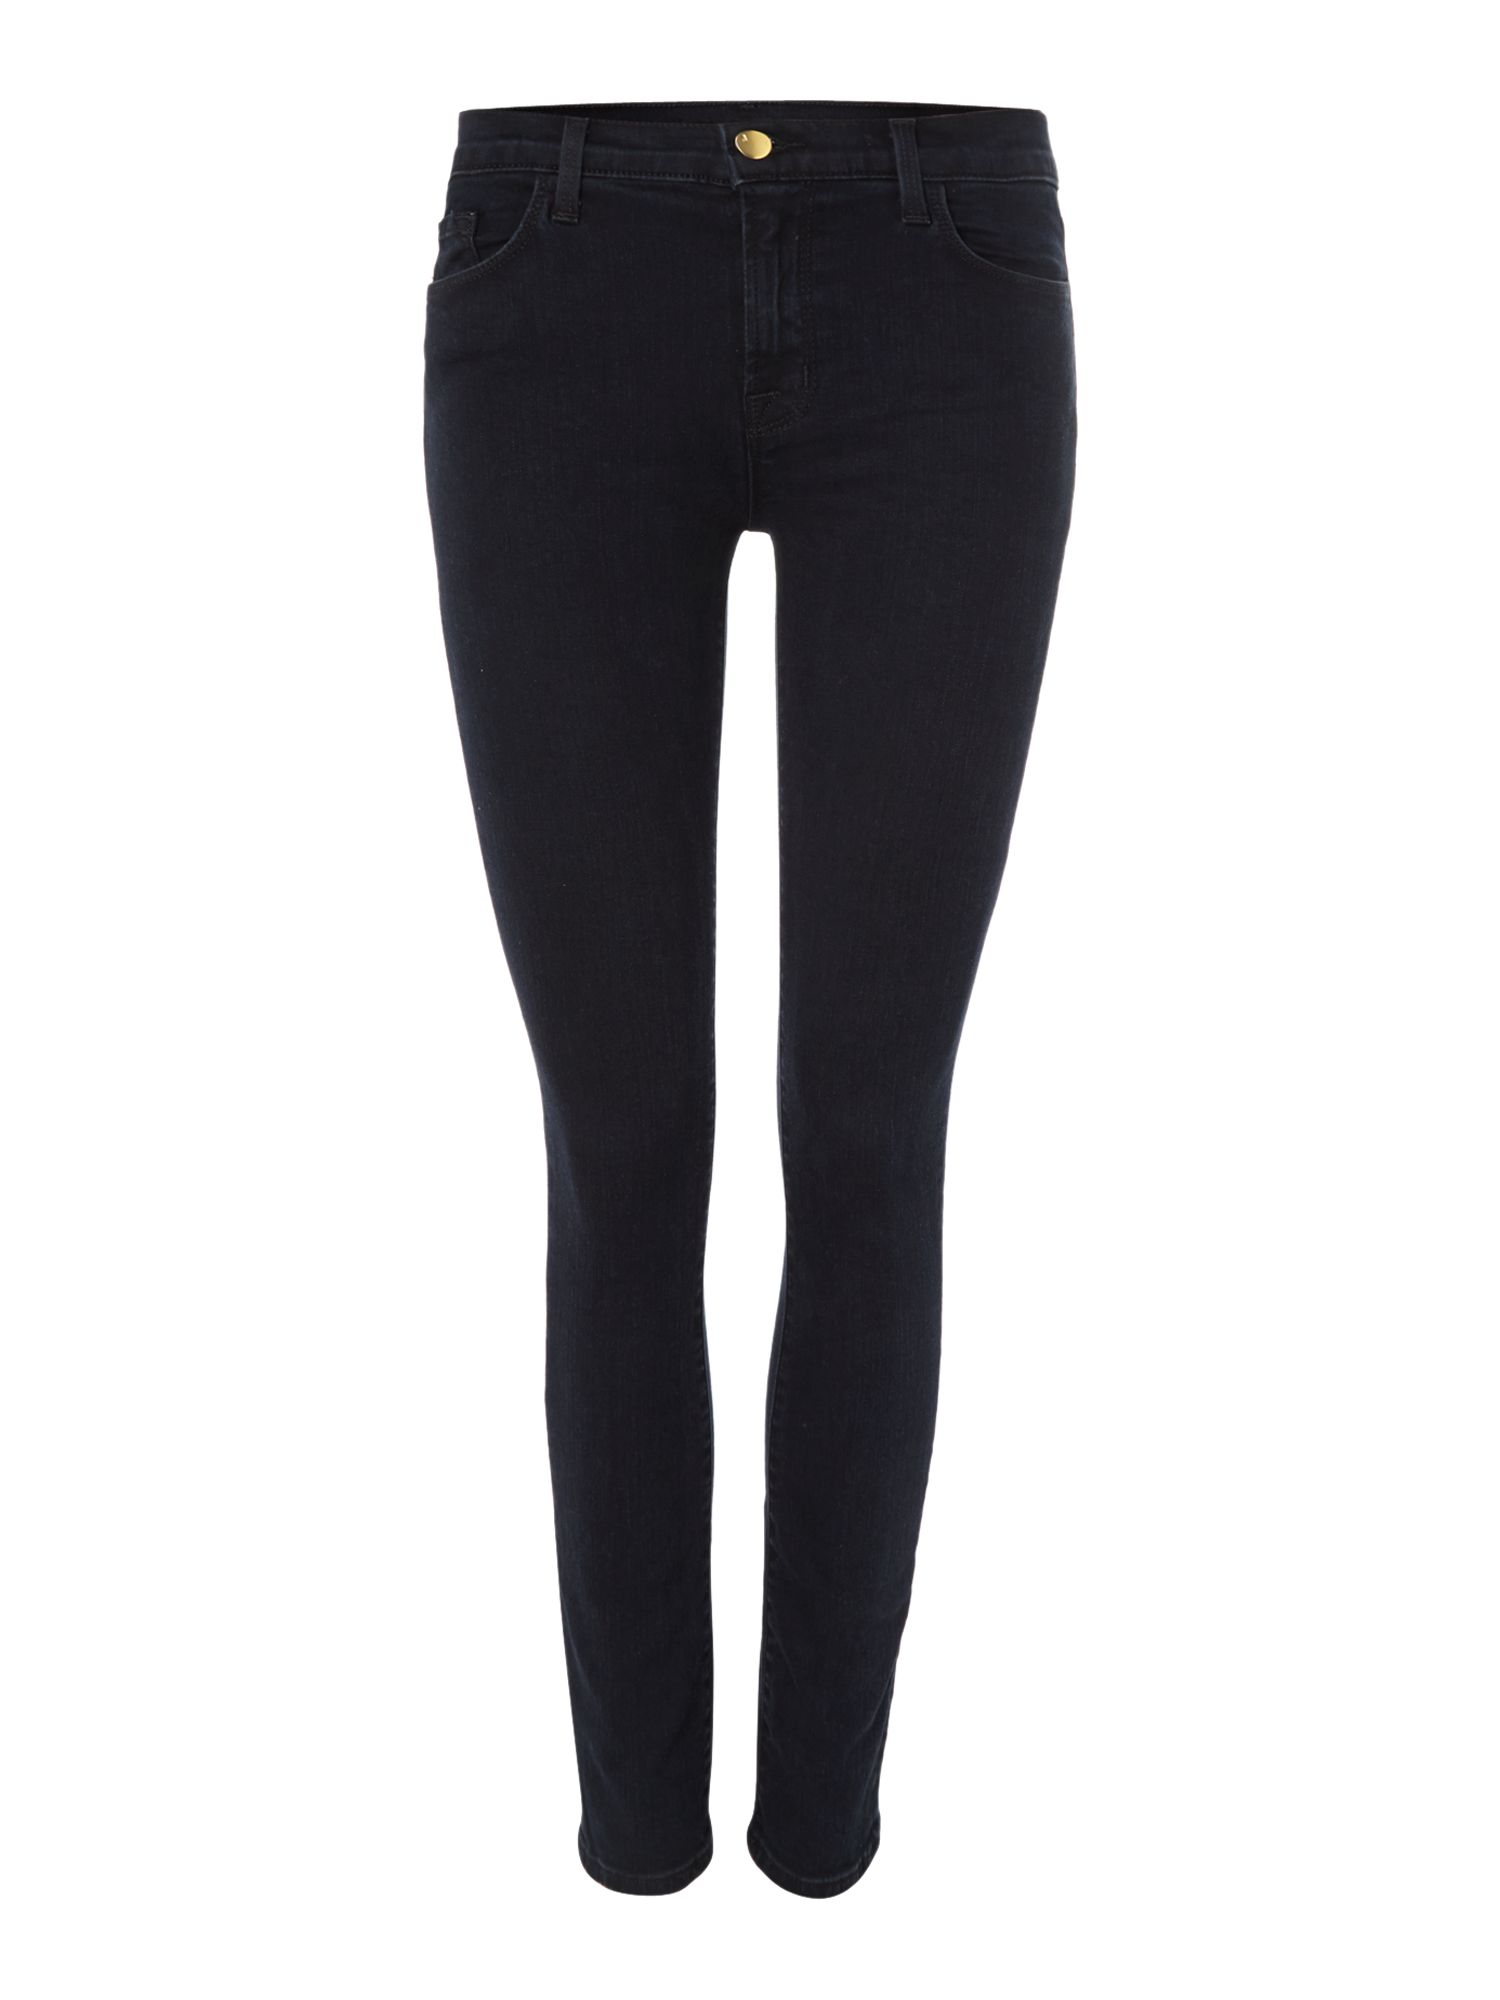 811 mid rise skinny jeans in bluebird